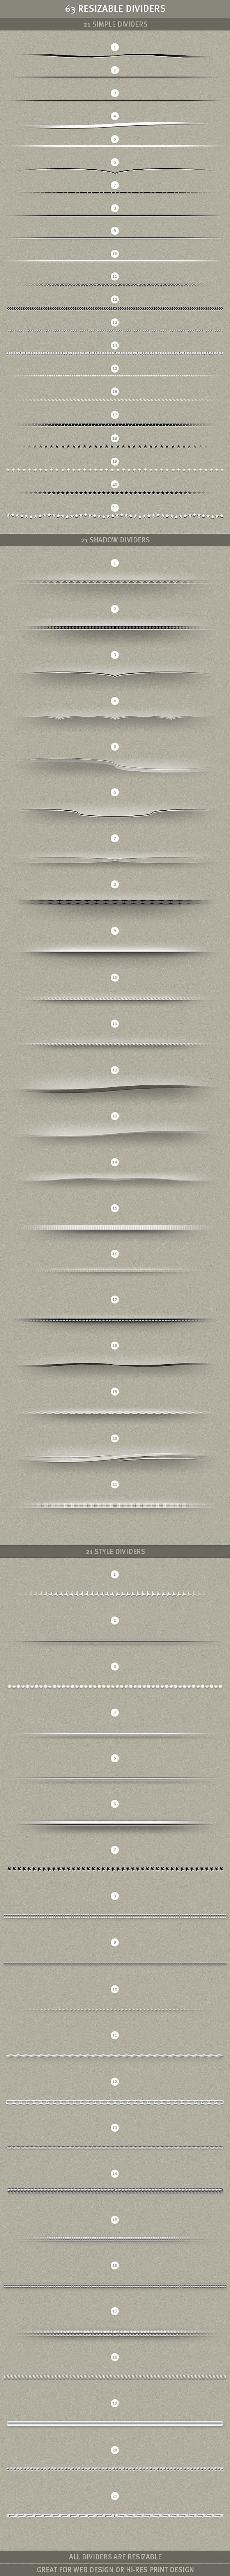 Dividers for web design. Some good, some bad, some thin, some fat.